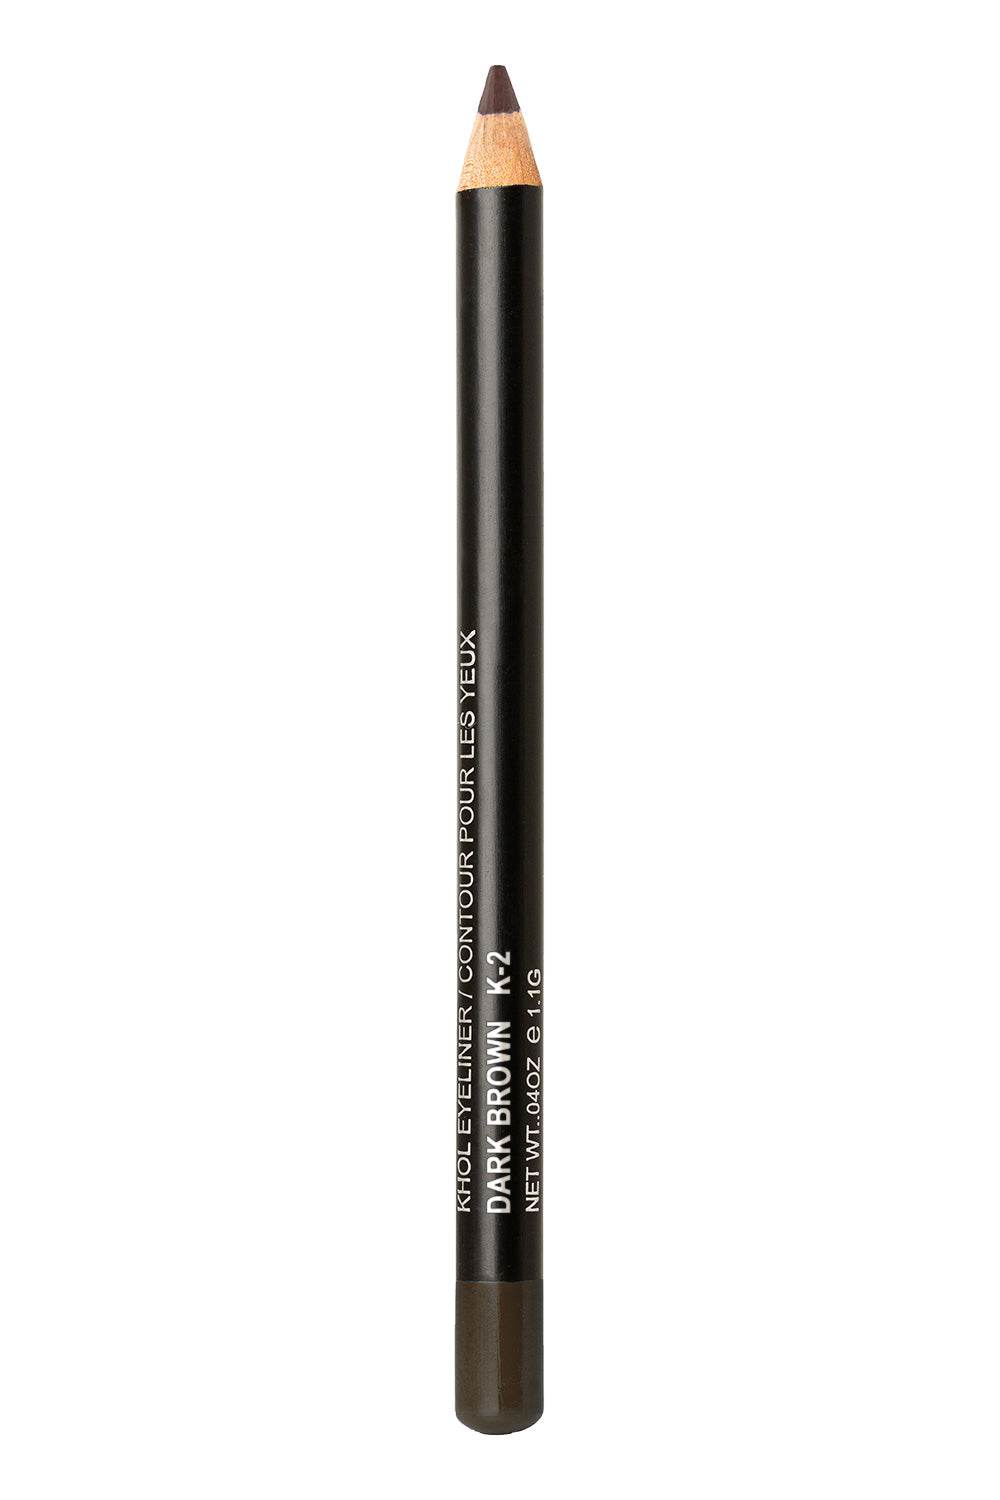 Dark Brown - Eyeliner Pencil